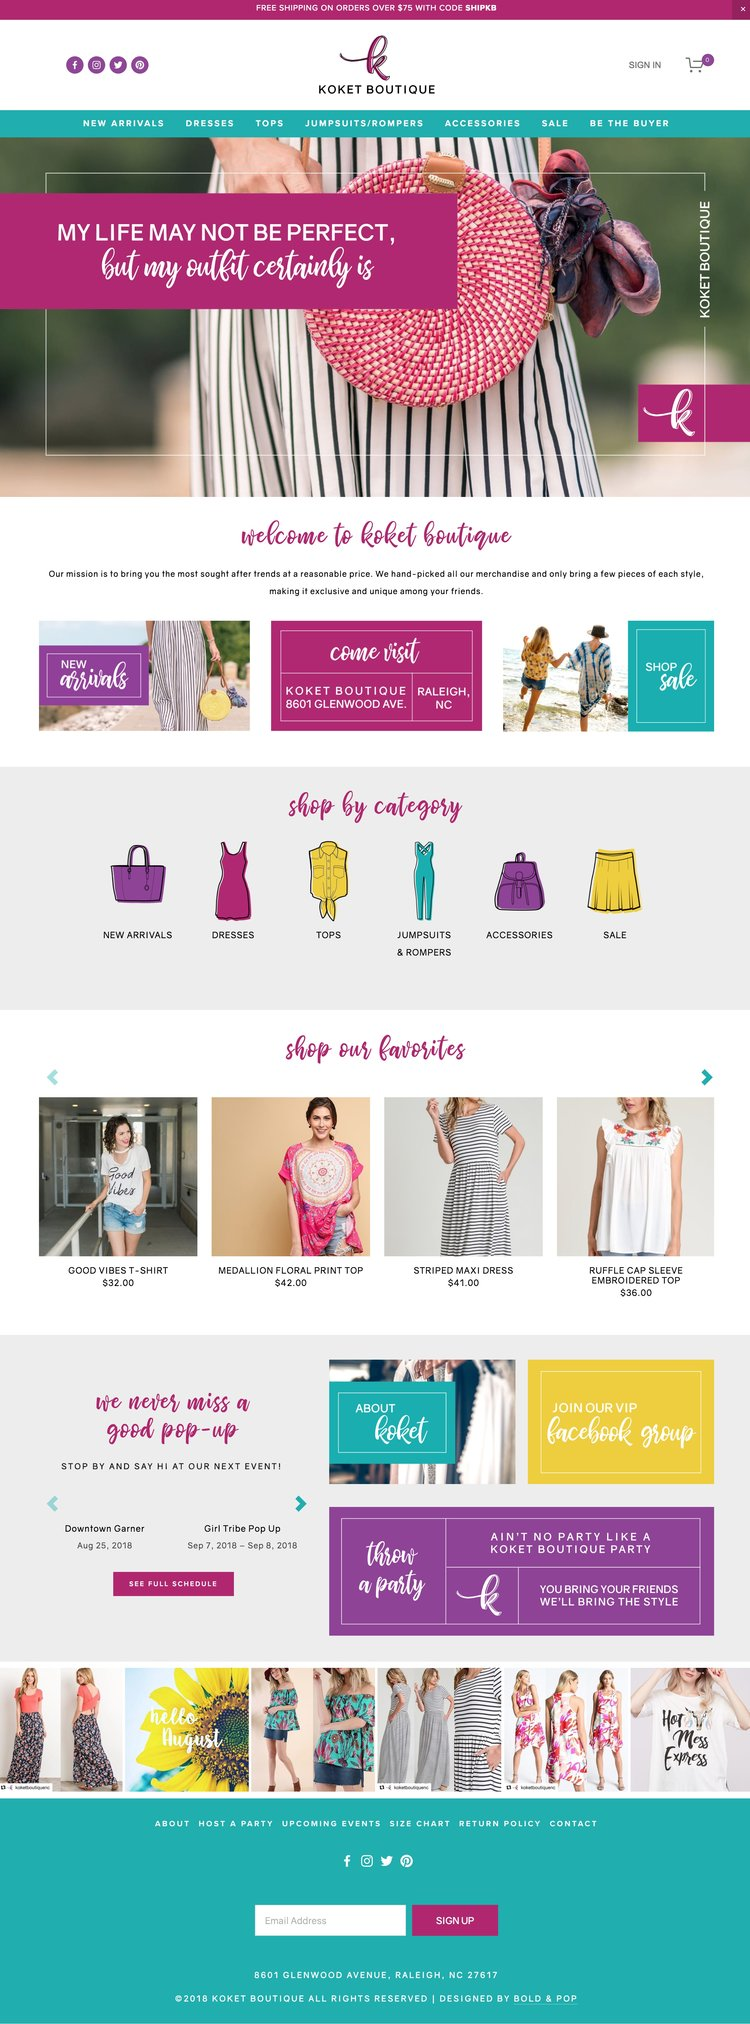 Anna Osgoodby - Ecommerce_WebsiteDesign.jpg